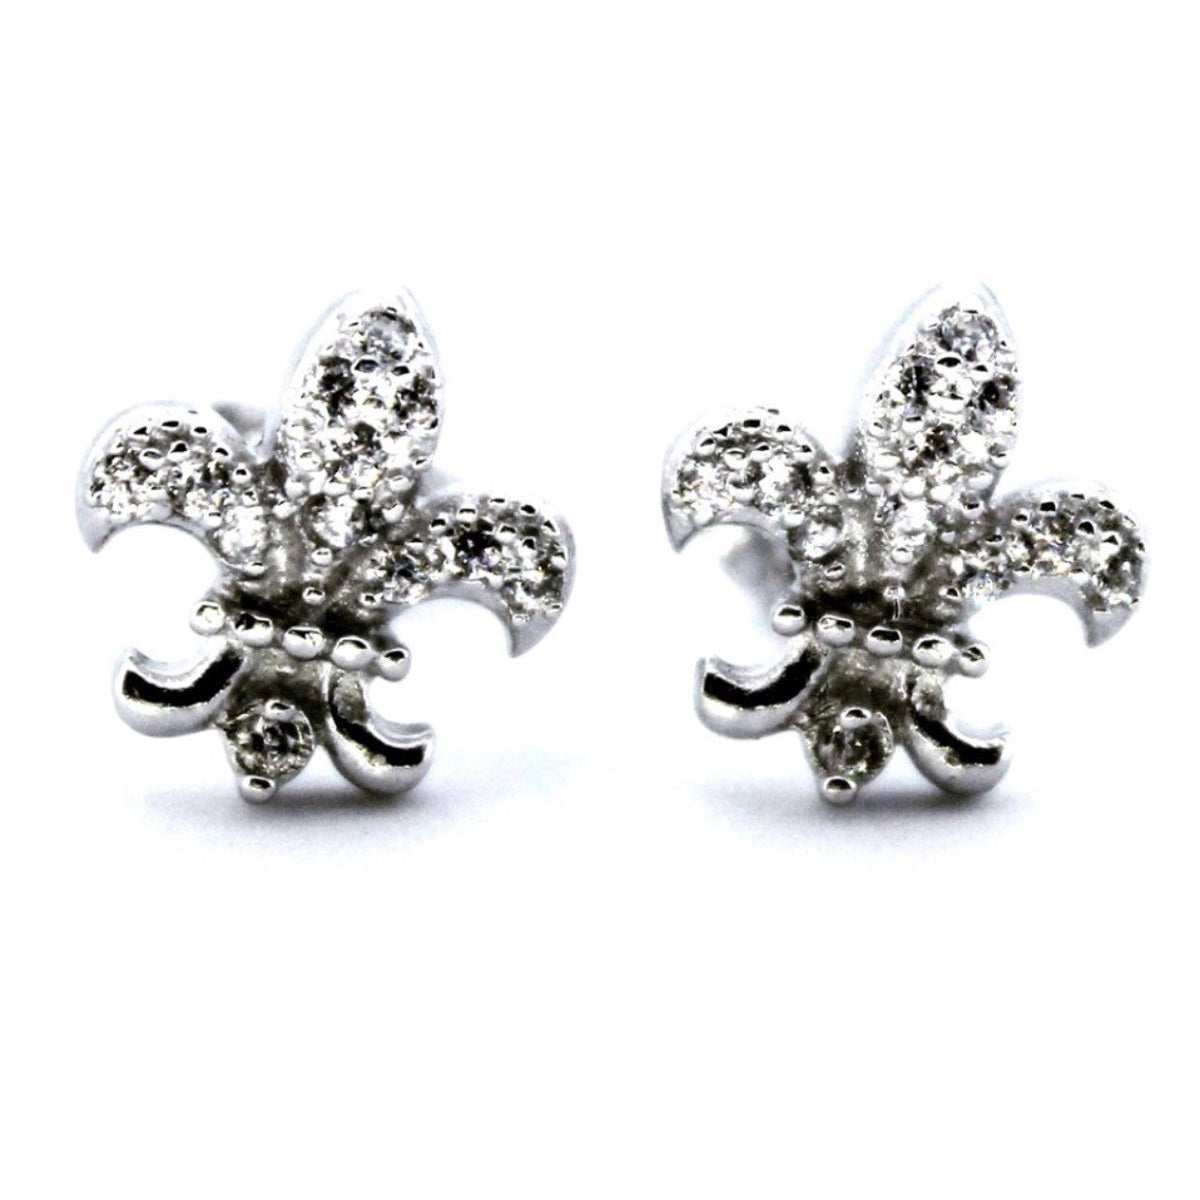 14k white gold layered on 925 Sterling Silver Anchor Earrings - 3 Royal Dazzy